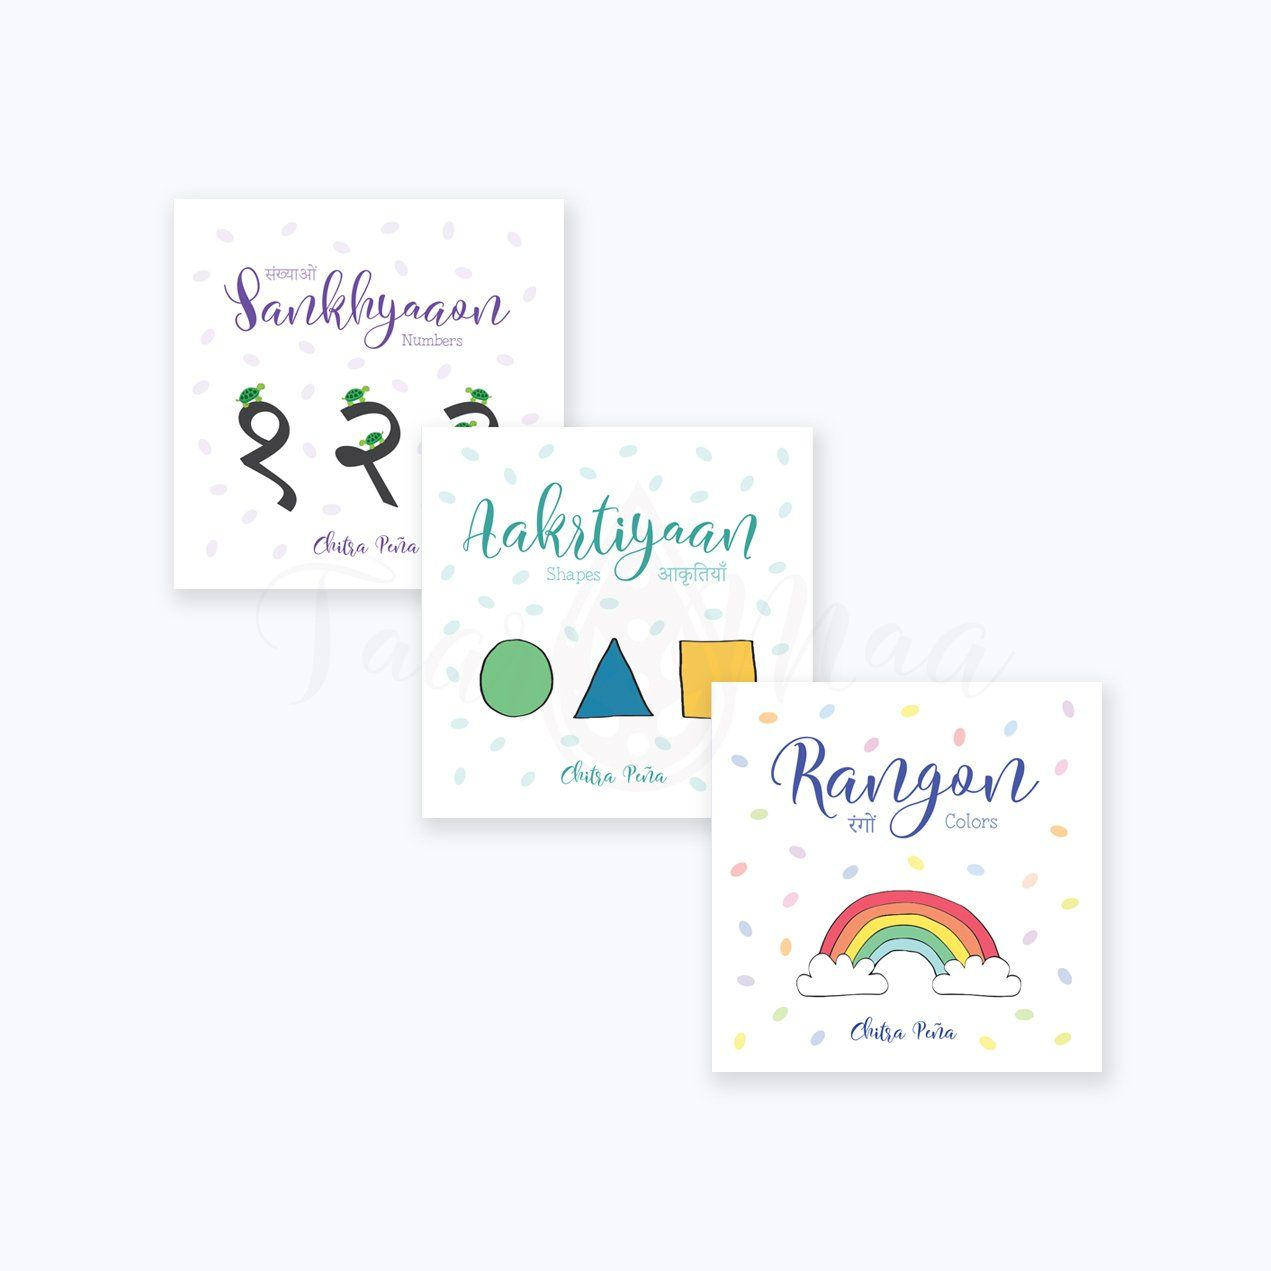 Gallery Hindi Board Books Colors, Shapes, Numbers is free HD wallpaper.